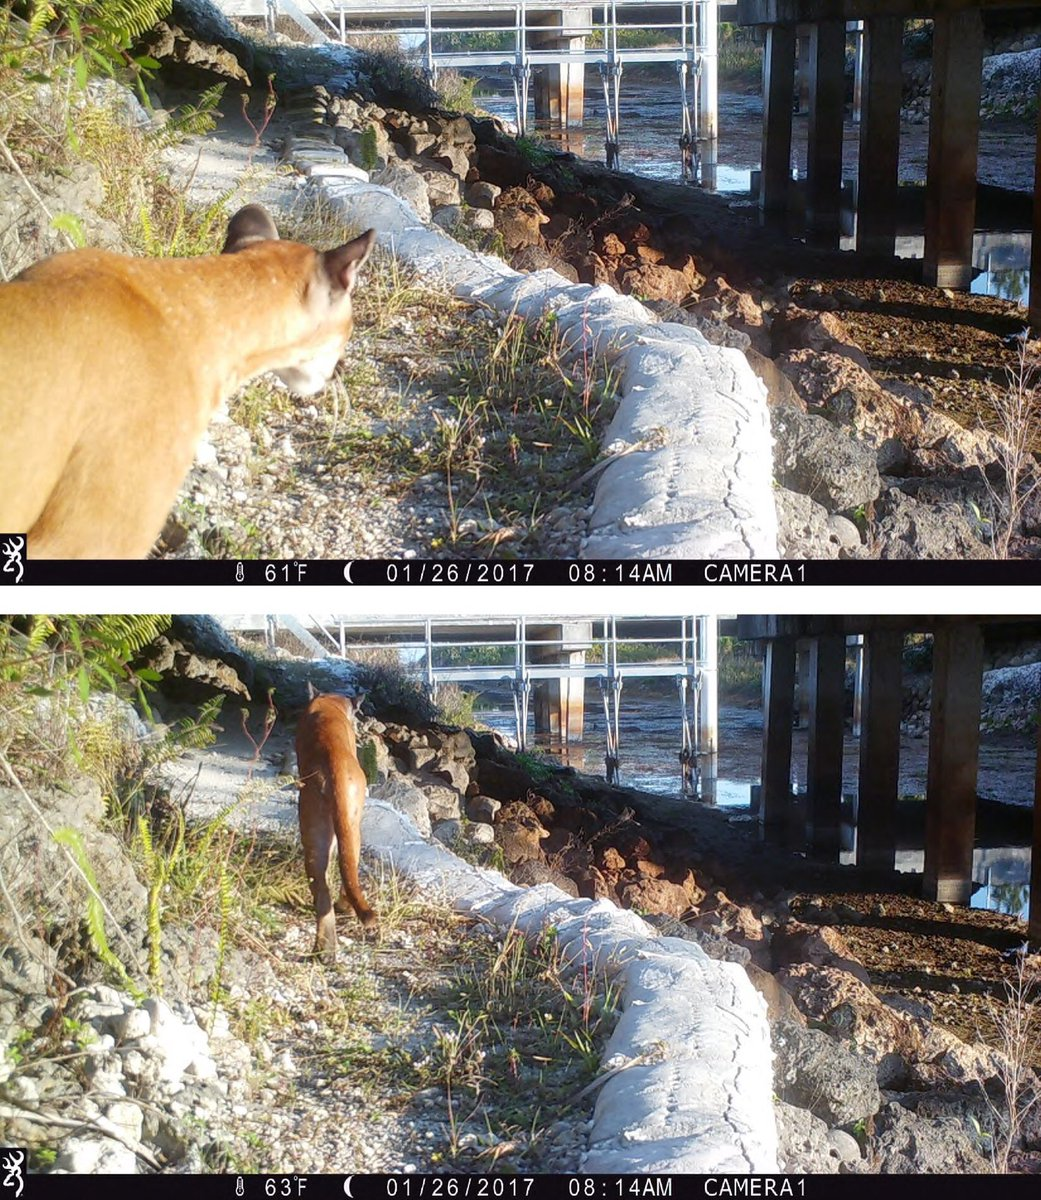 Look at the photos @MyFDOT took of Florida Panther using the I-75 wildlife pathway!! Awesome project protecting Florida&#39;s #wildlife. #Sayfie <br>http://pic.twitter.com/P9aW0tMMwR